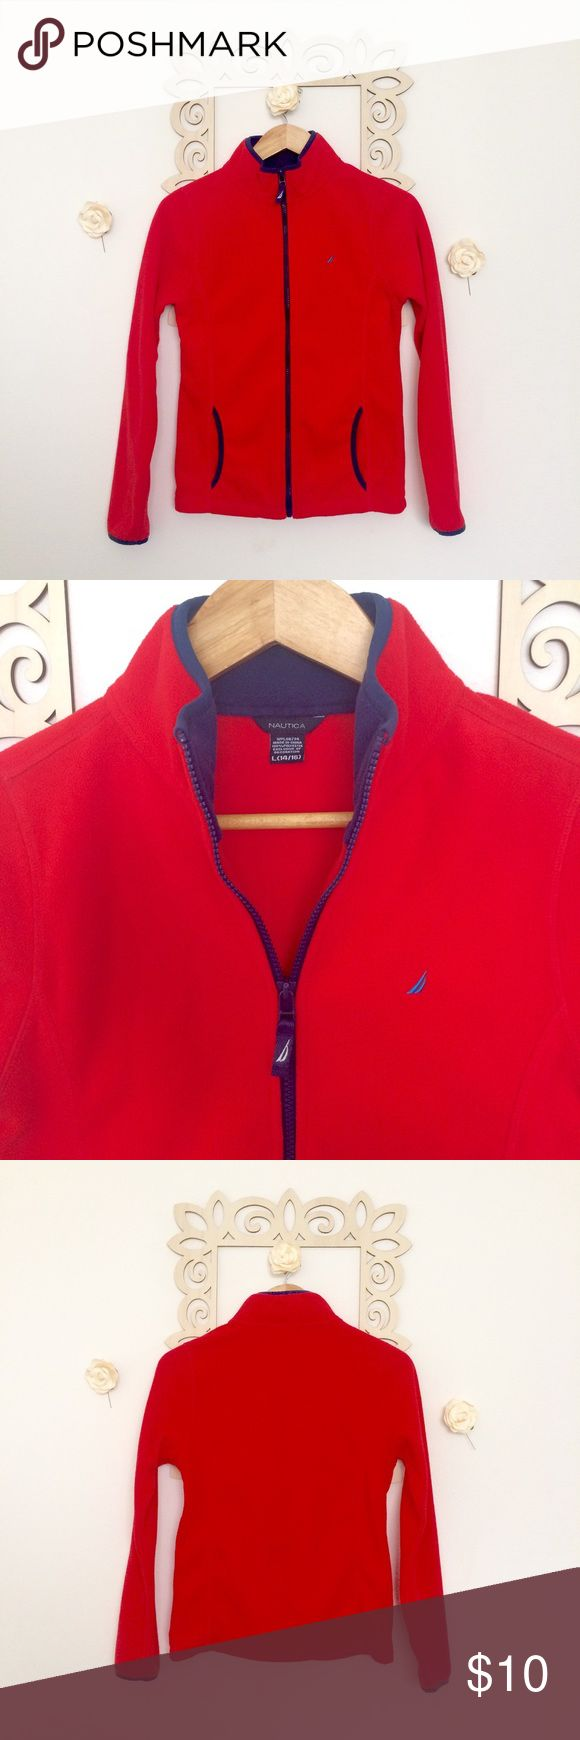 Nautica Fleece Jacket Red Orange with Navy Blue trim color fleece zip up jacket by Nautica. This is a girls size 14/16, but can fit as a small in women's size. Excellent condition, very warm. Pet free and smoke free home. Nautica Jackets & Coats